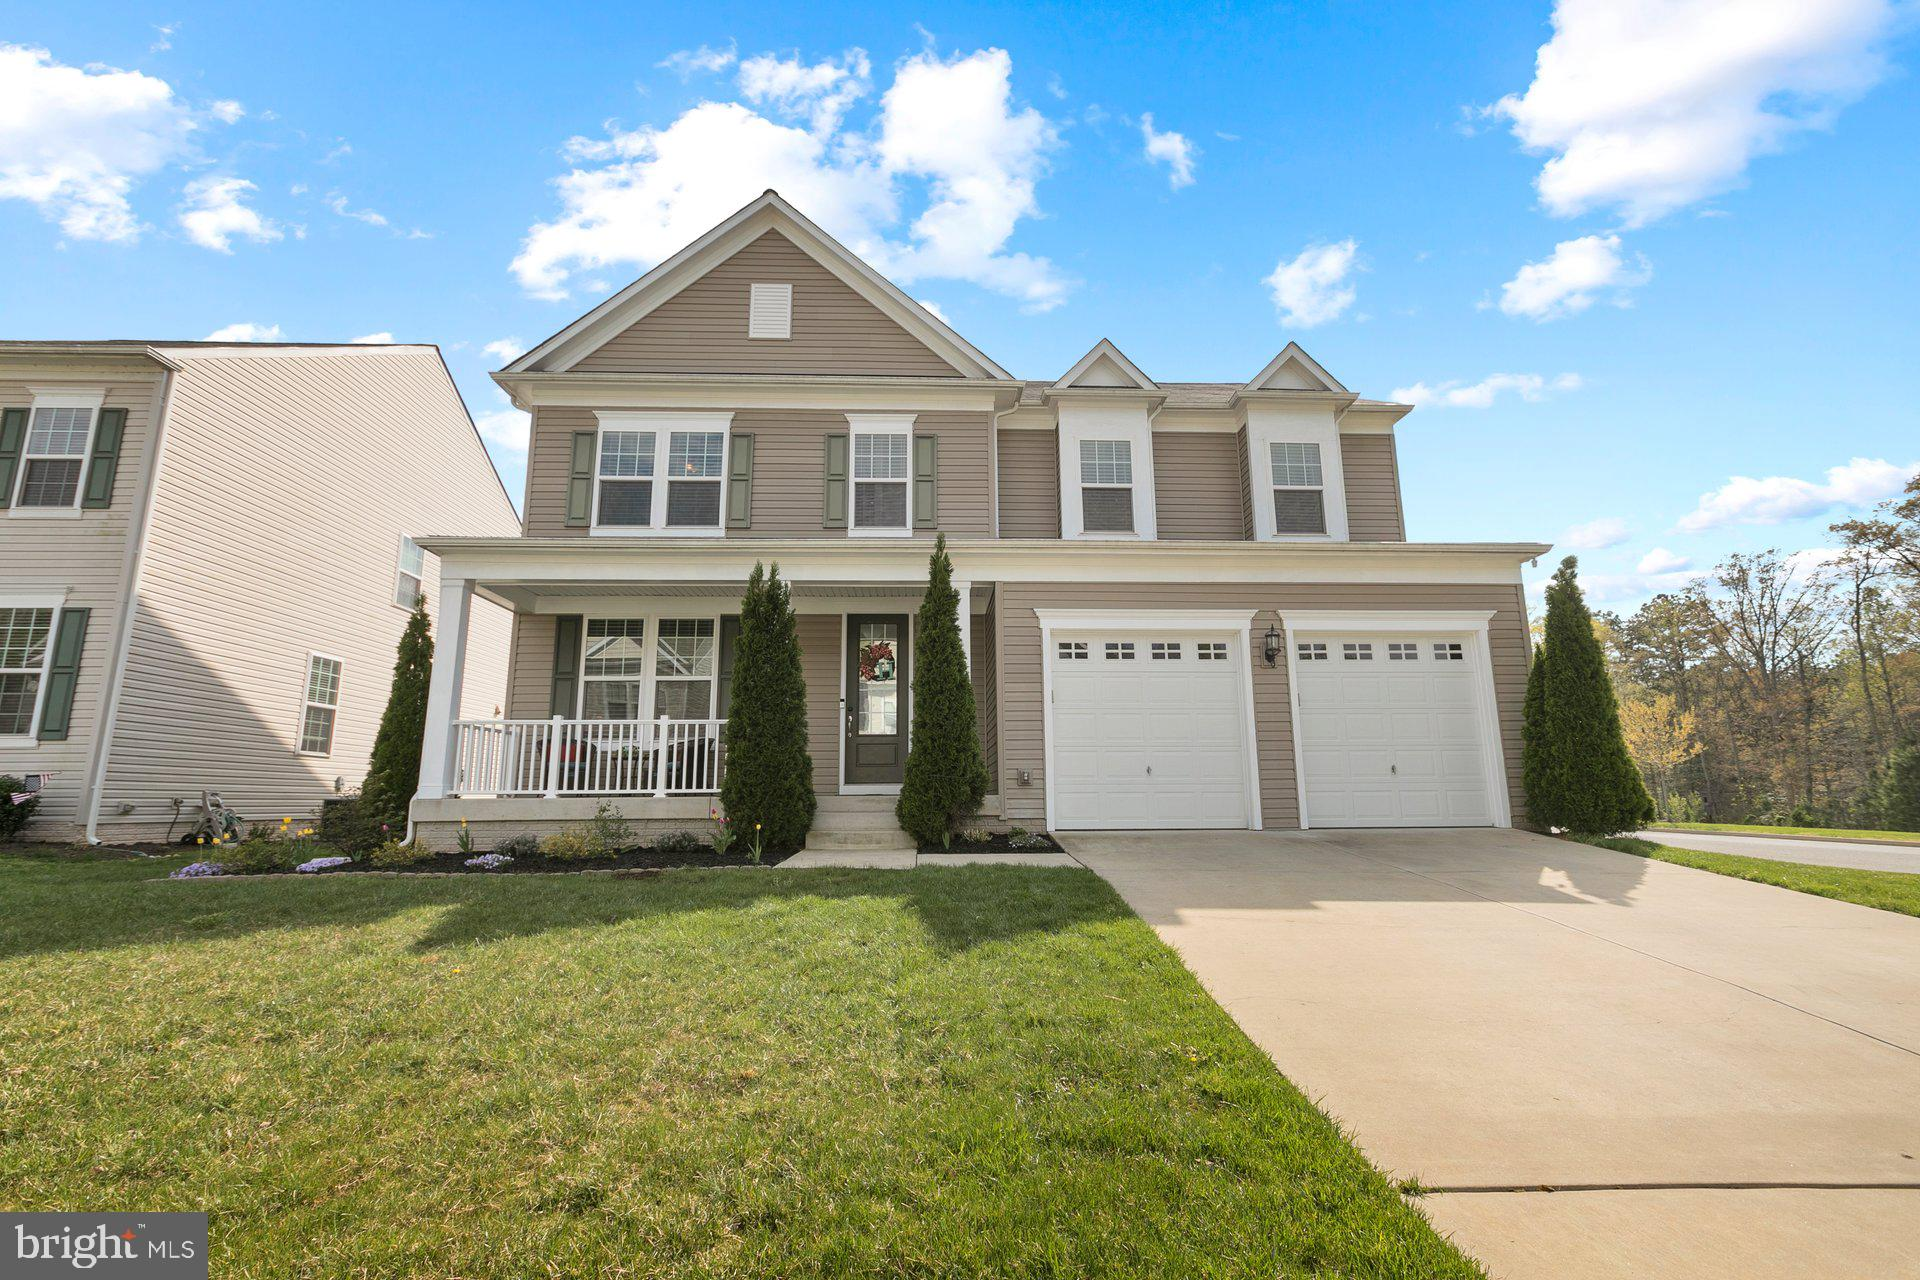 Beautiful 6 bedroom, 3.5 bath colonial located in Wildewood.  The open concept floor plan includes a